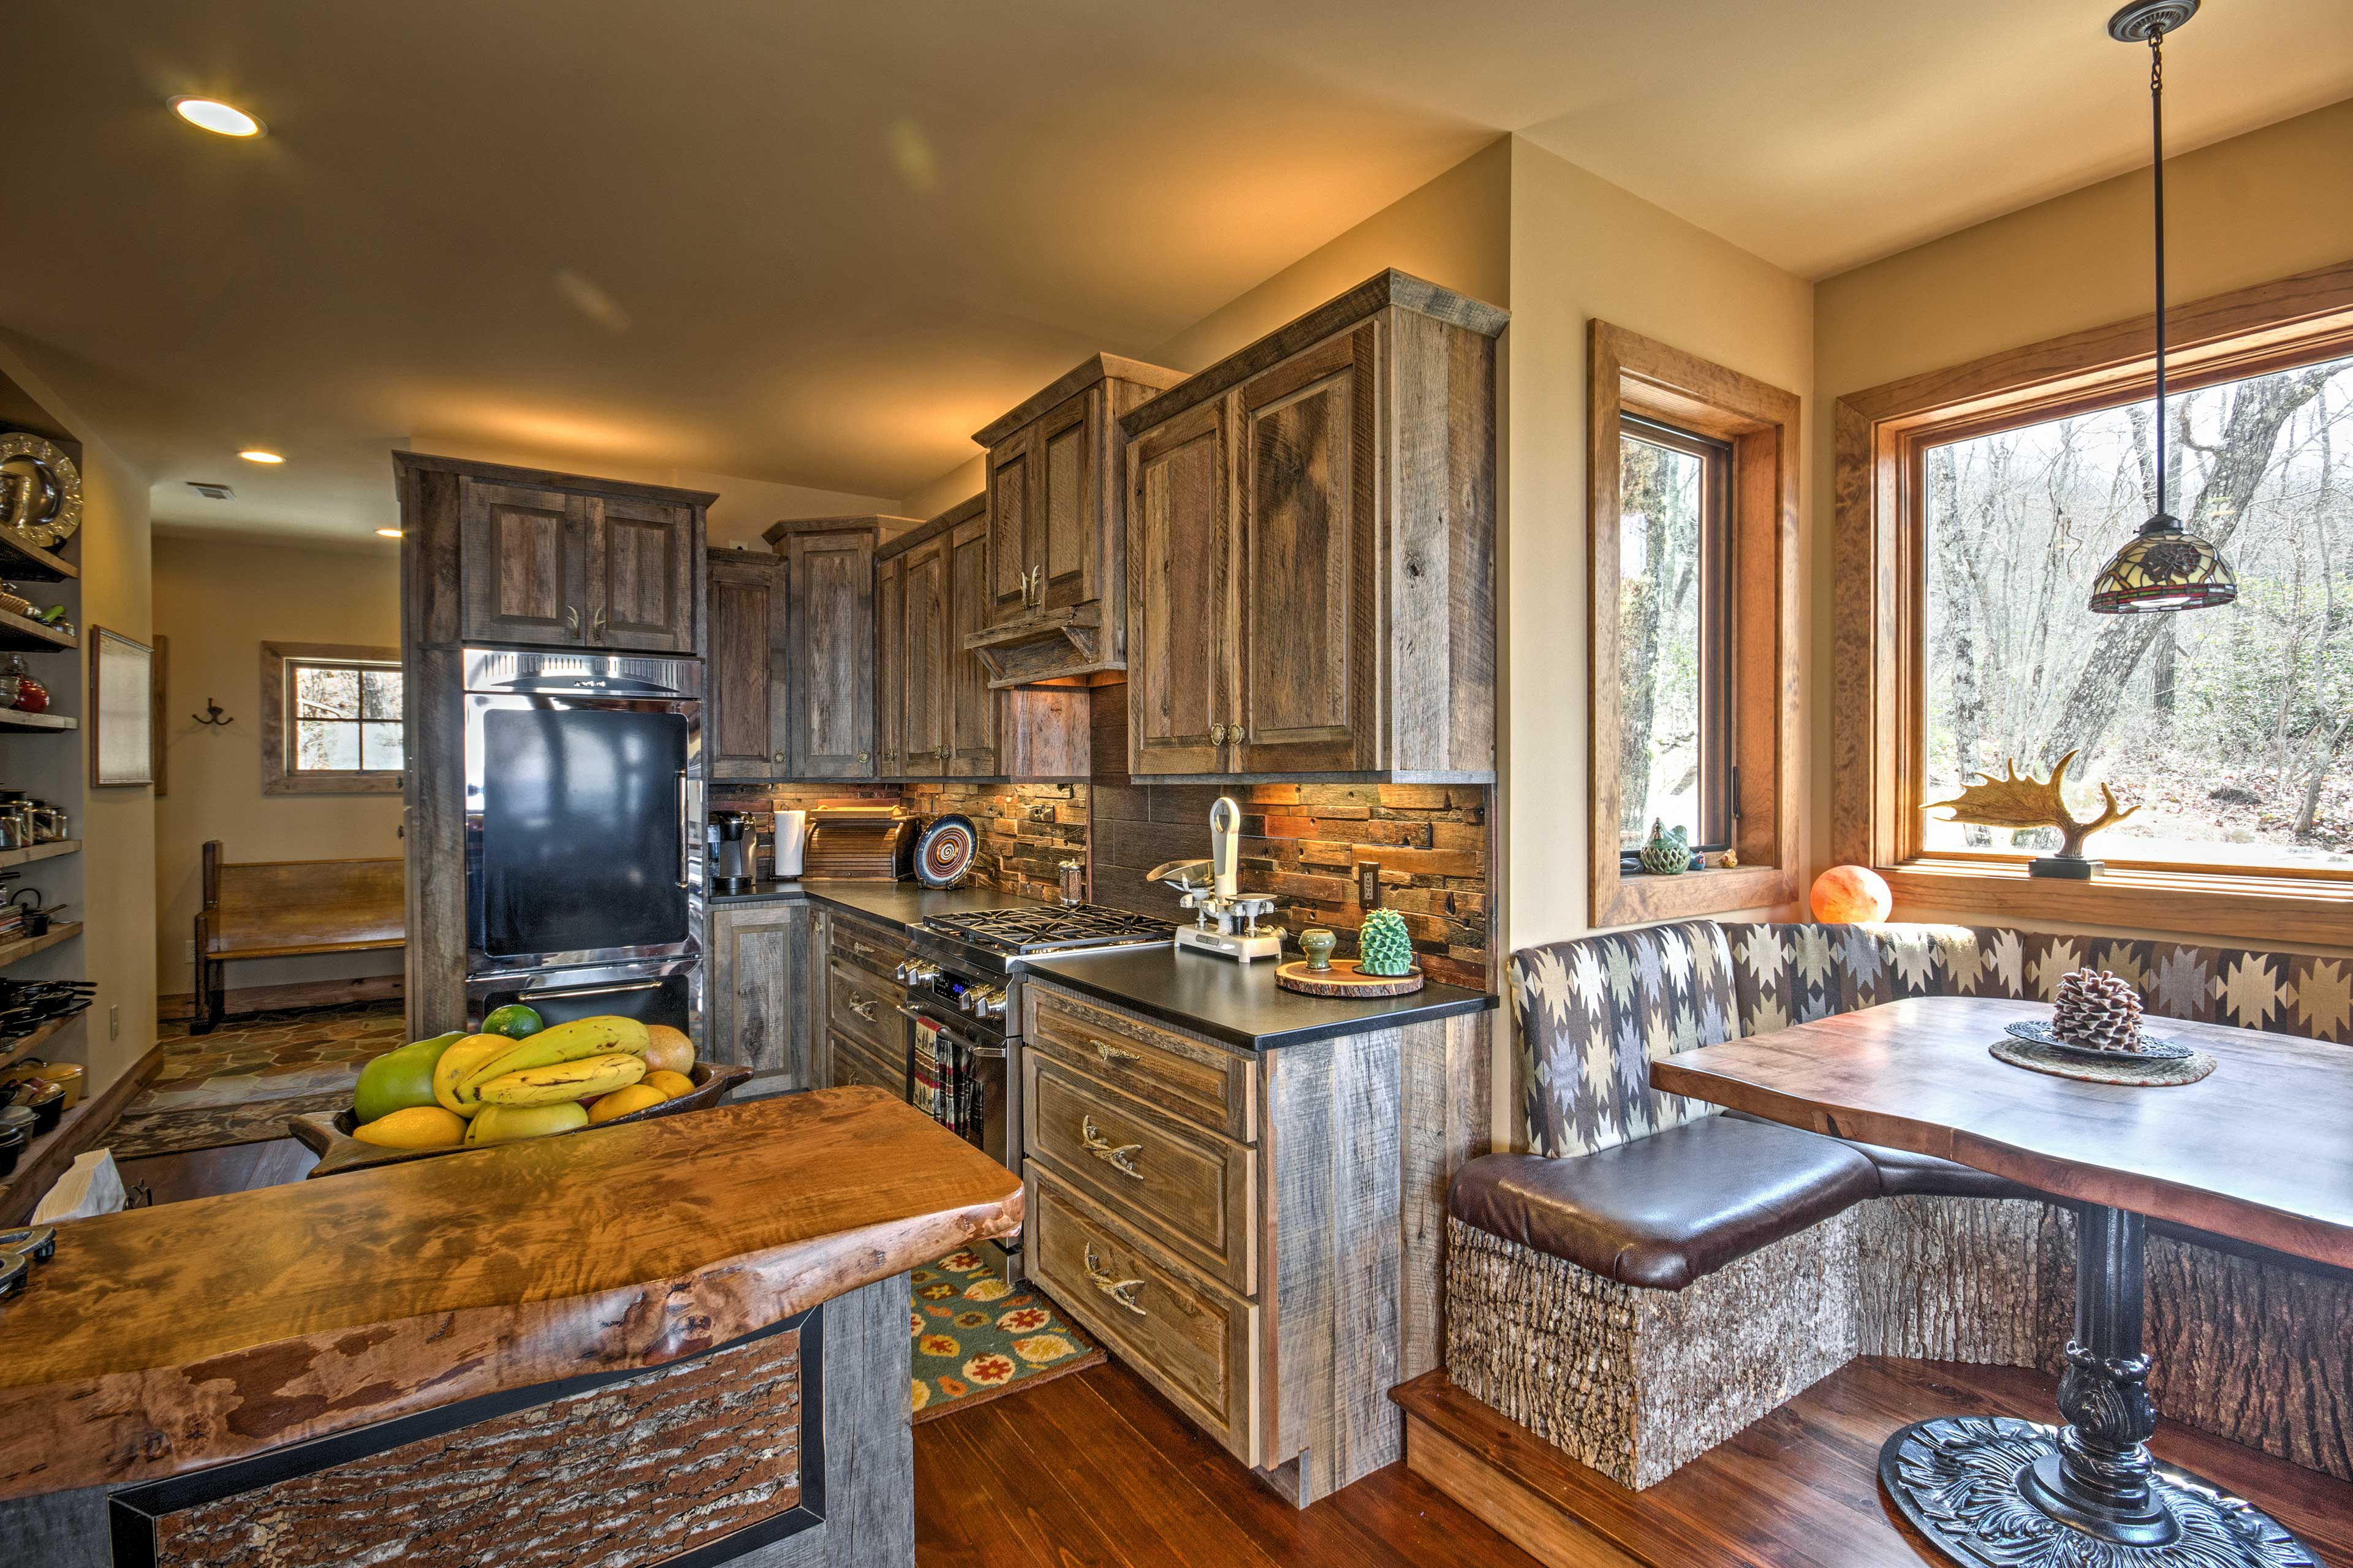 The chef of the group will delight in the fully equipped kitchen.